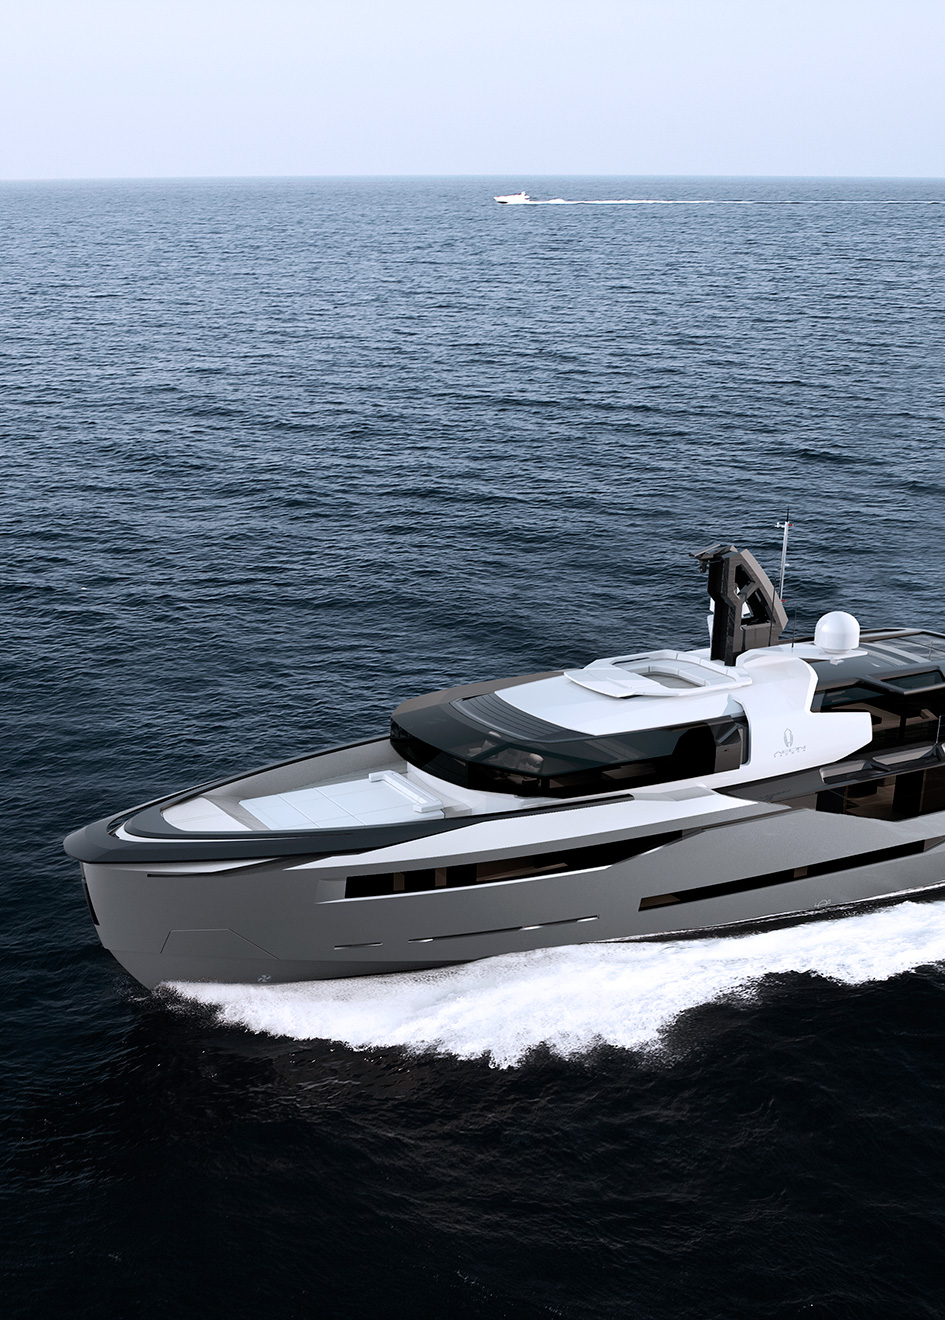 running-shot-of-the-aeon-380-yacht-concept-by-scaro-design